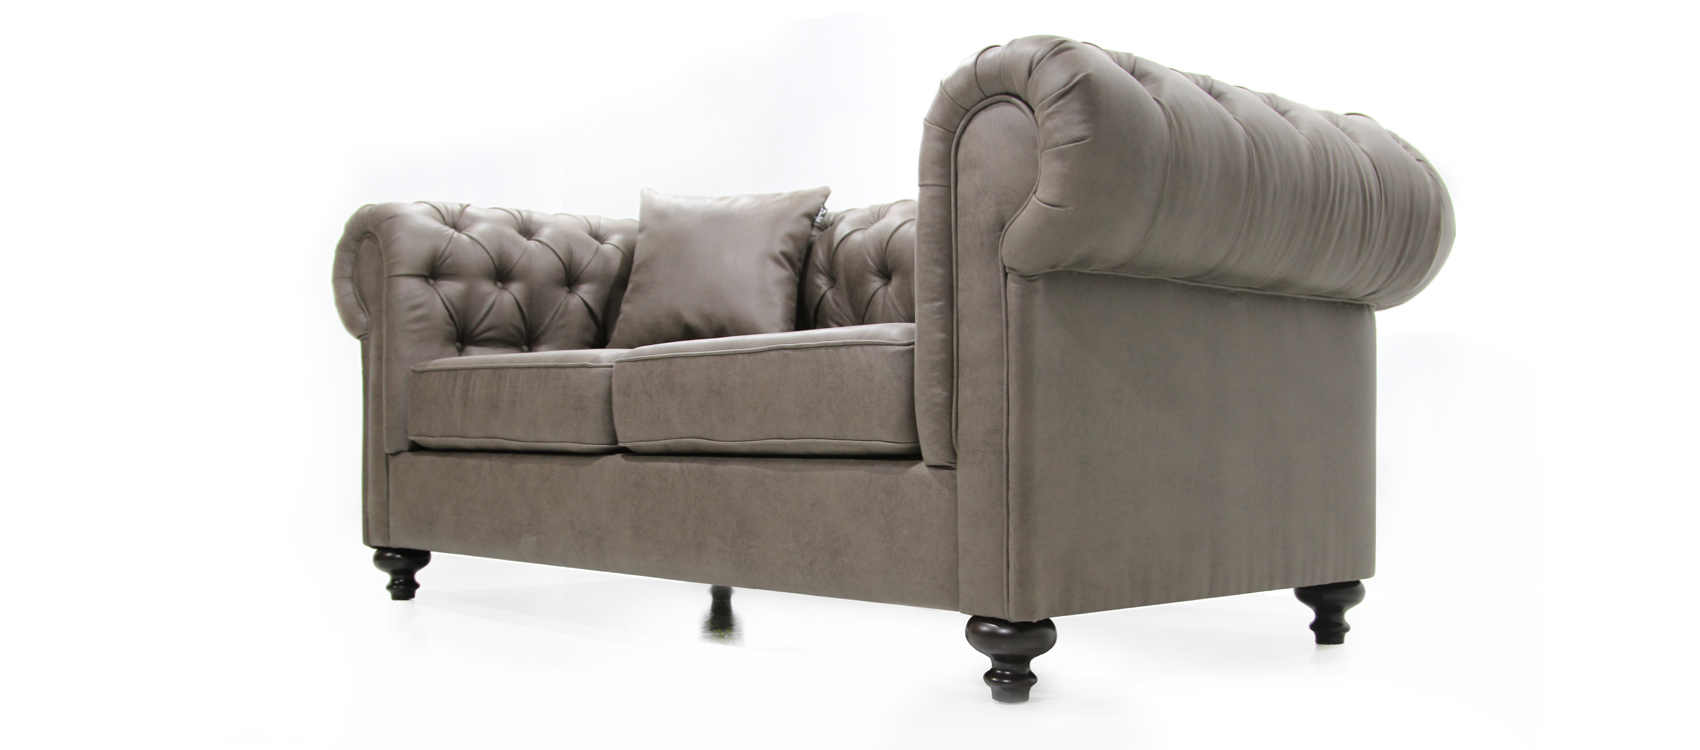 Sofa CHESTER 2 SEATER صور 9